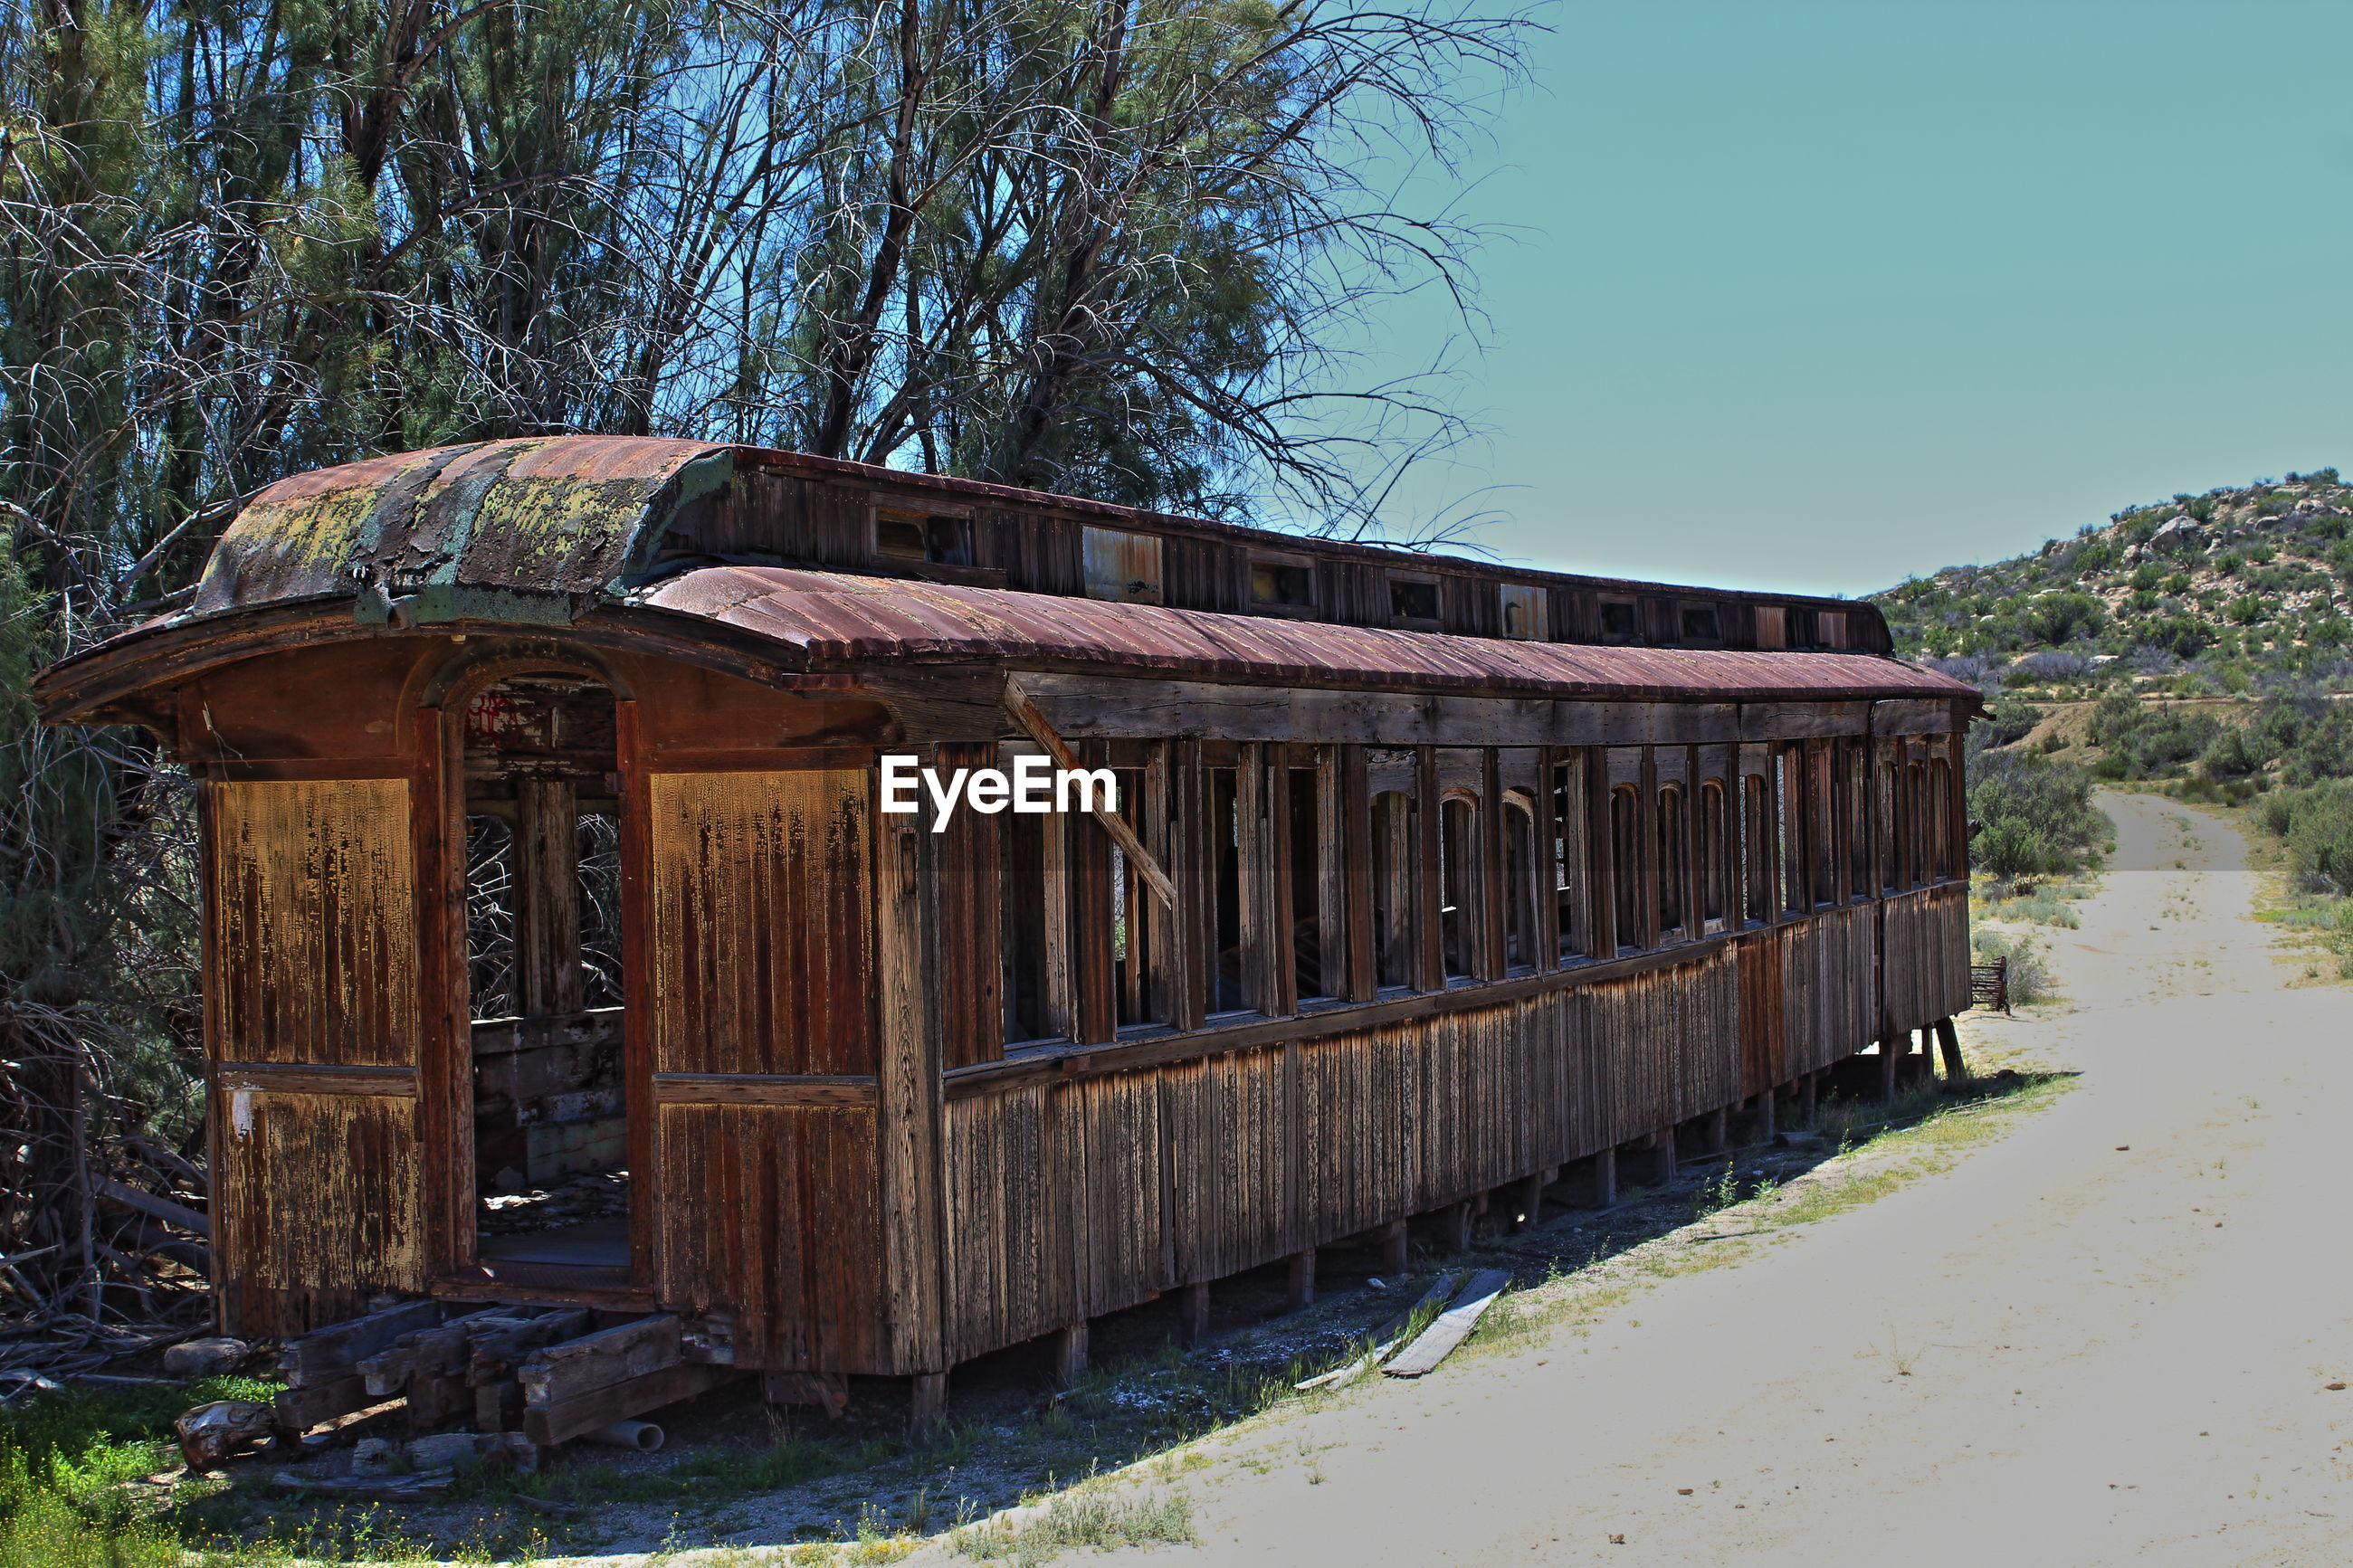 Abandoned wooden railroad car by empty road against clear sky